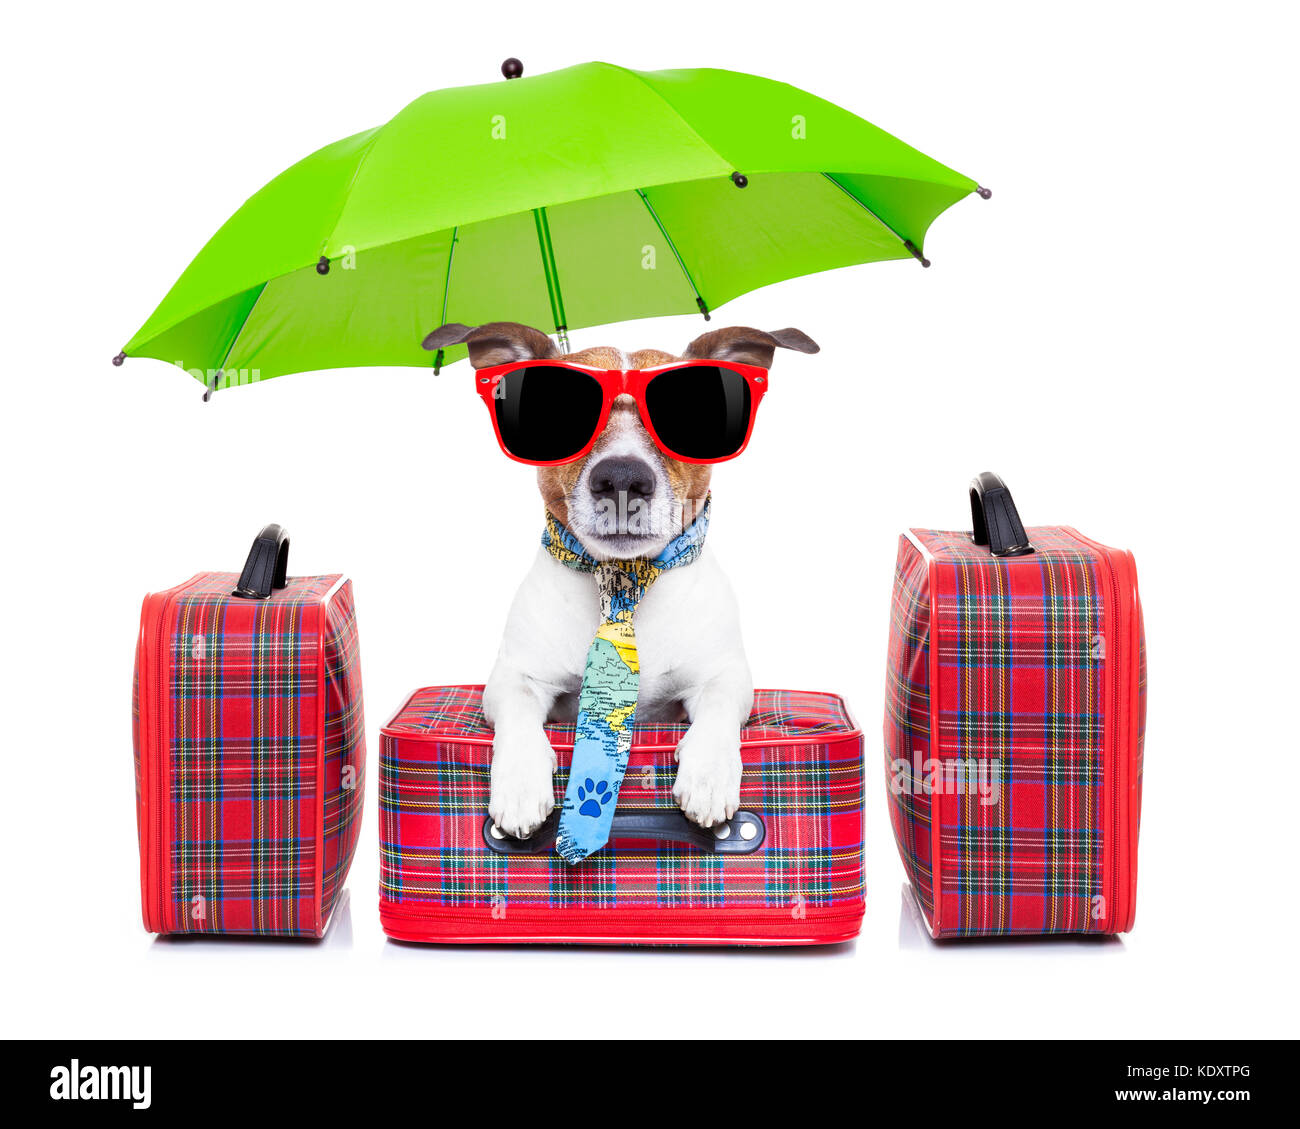 dog with luggage ready to go on summer holidays or vacation with umbrella and sunglasses - Stock Image